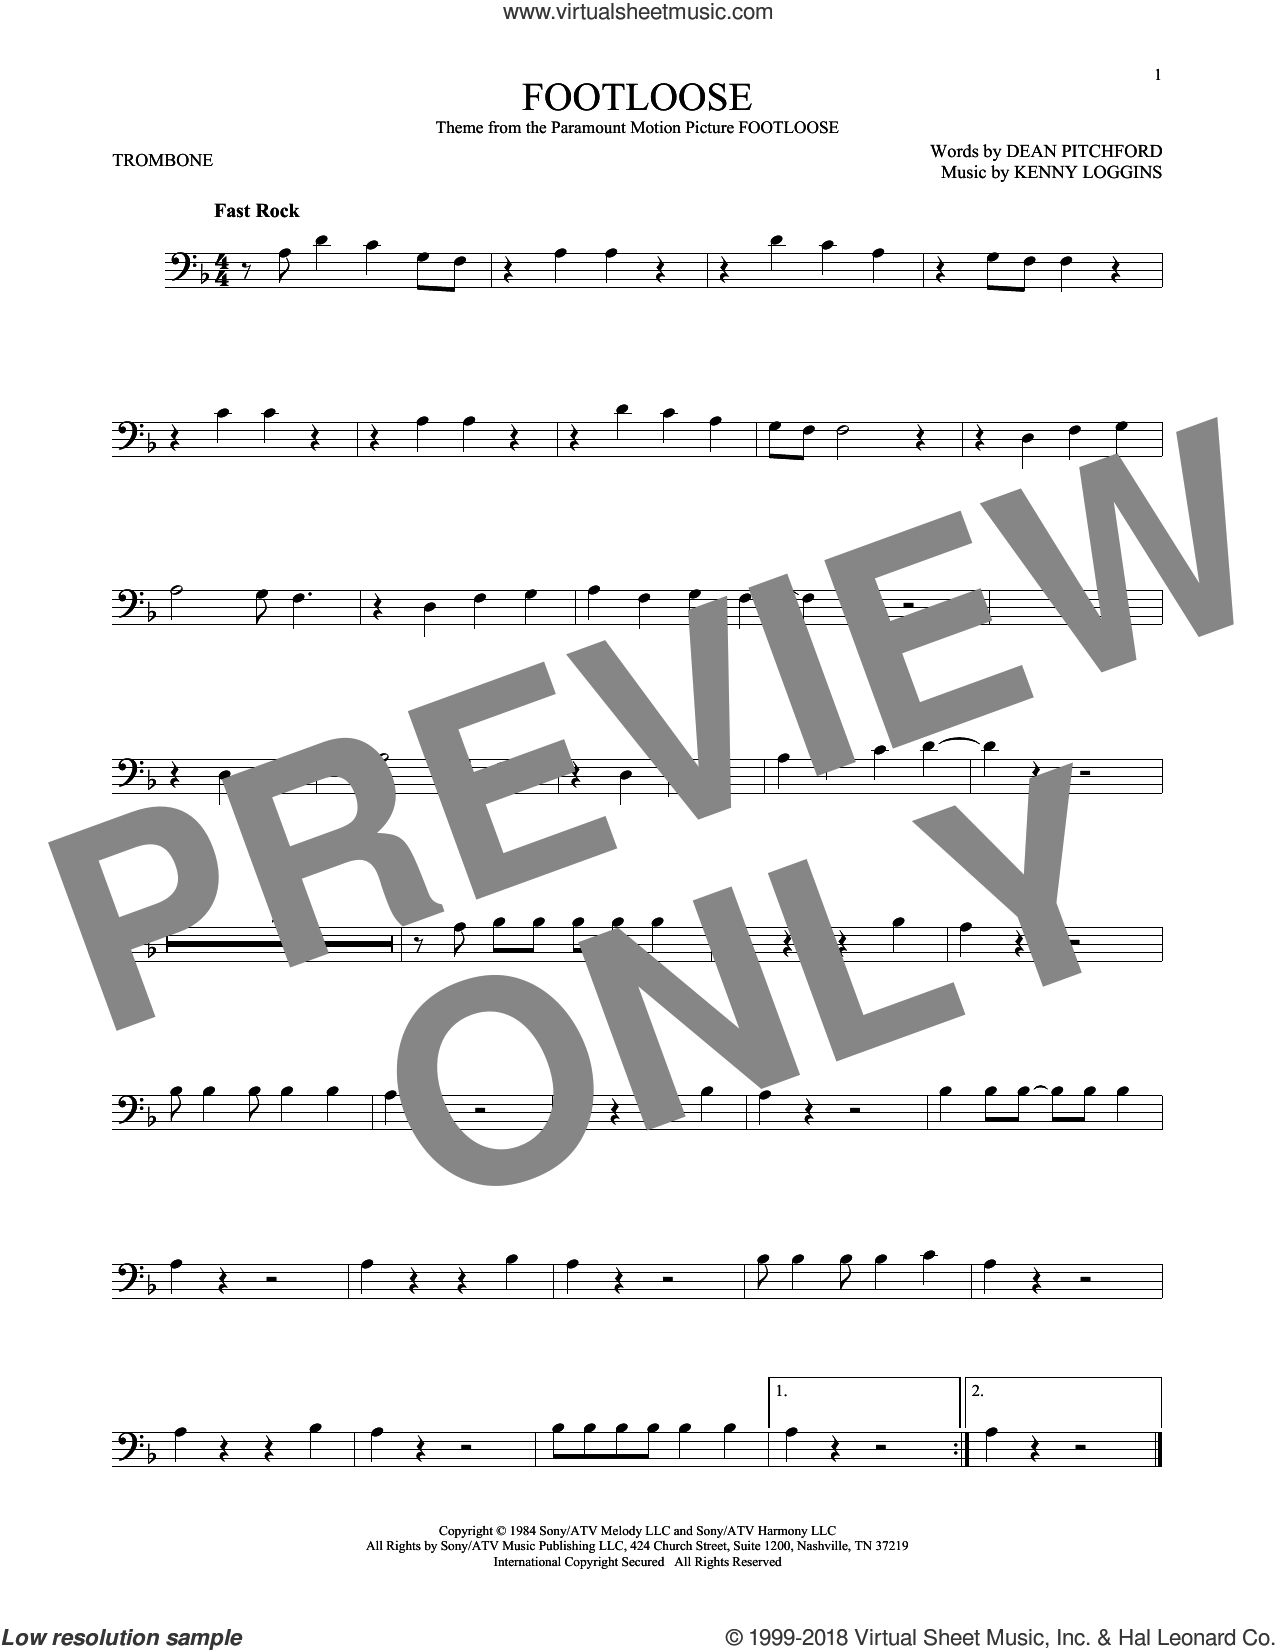 Footloose sheet music for trombone solo by Dean Pitchford